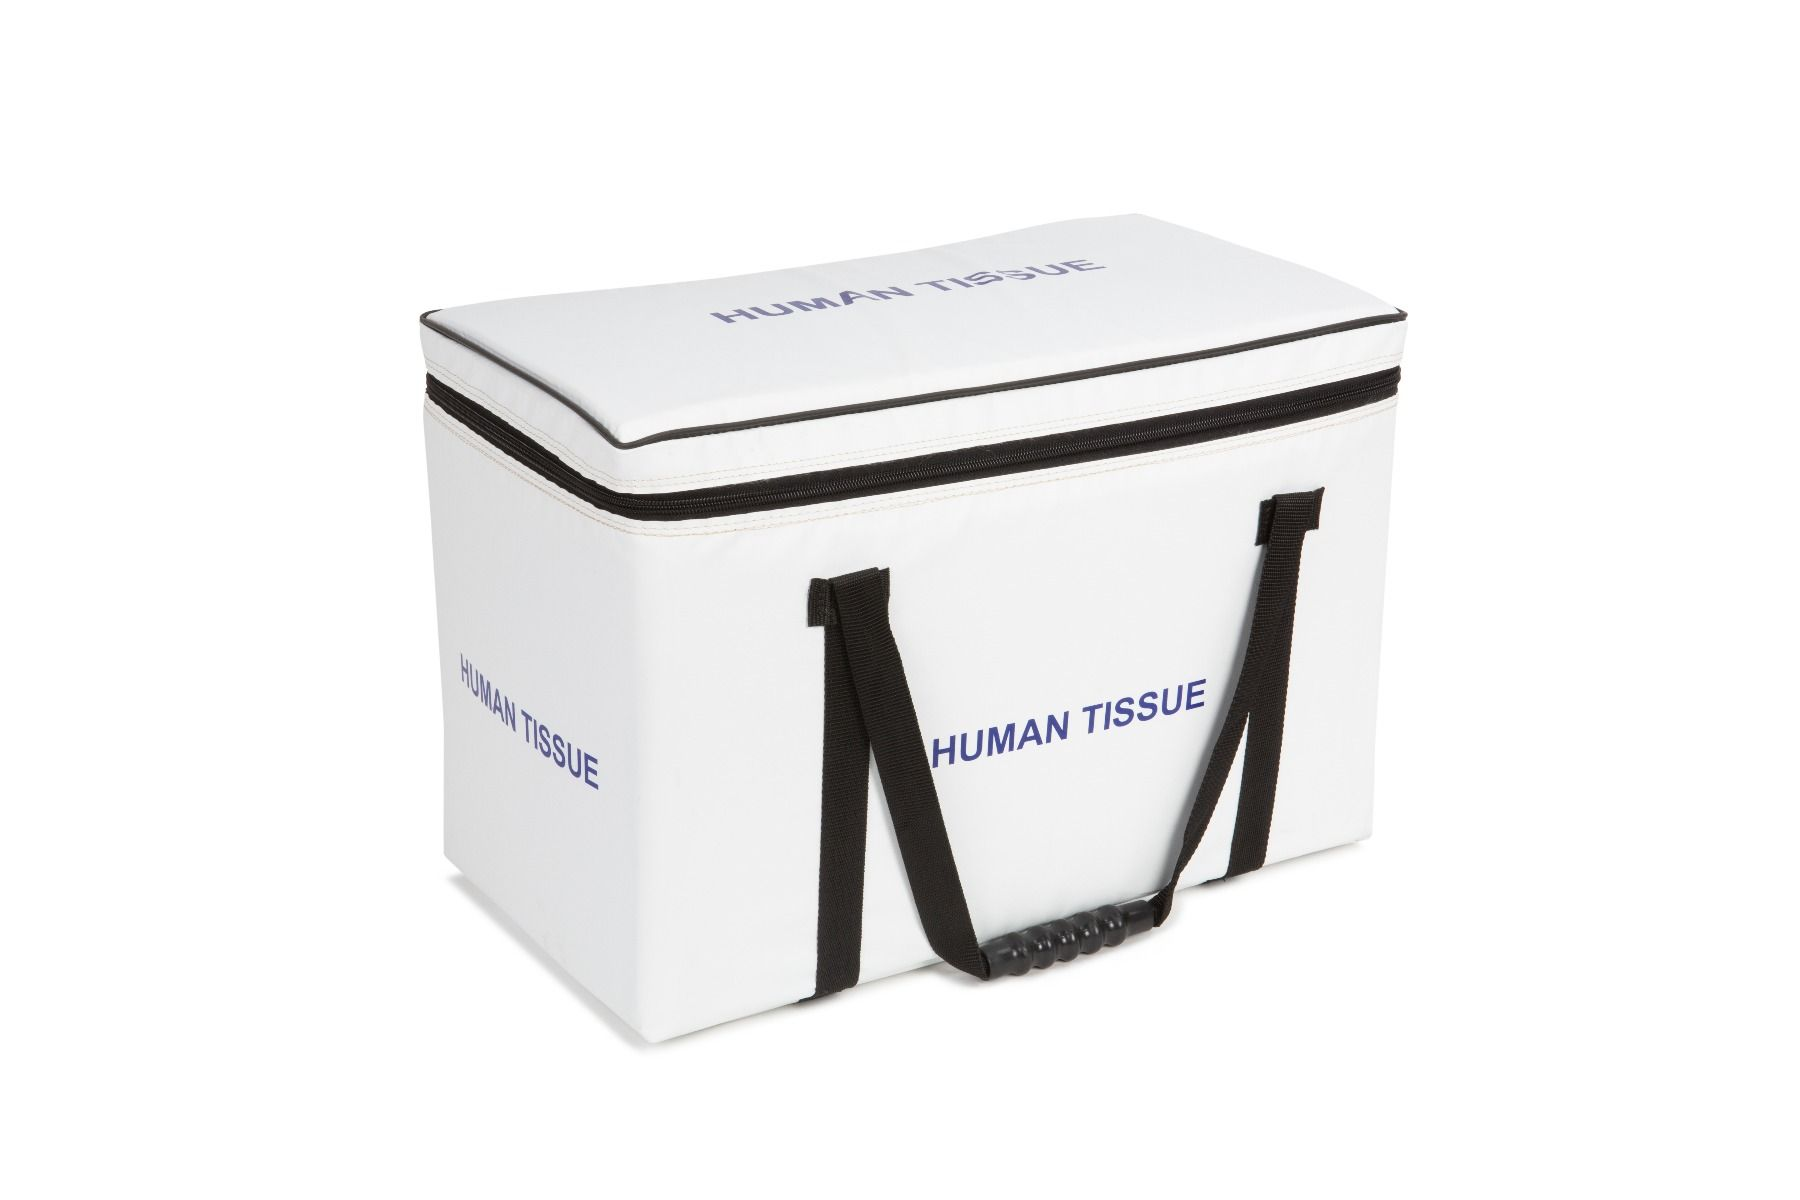 Medium Transport Medical Carrier - Human Tissue